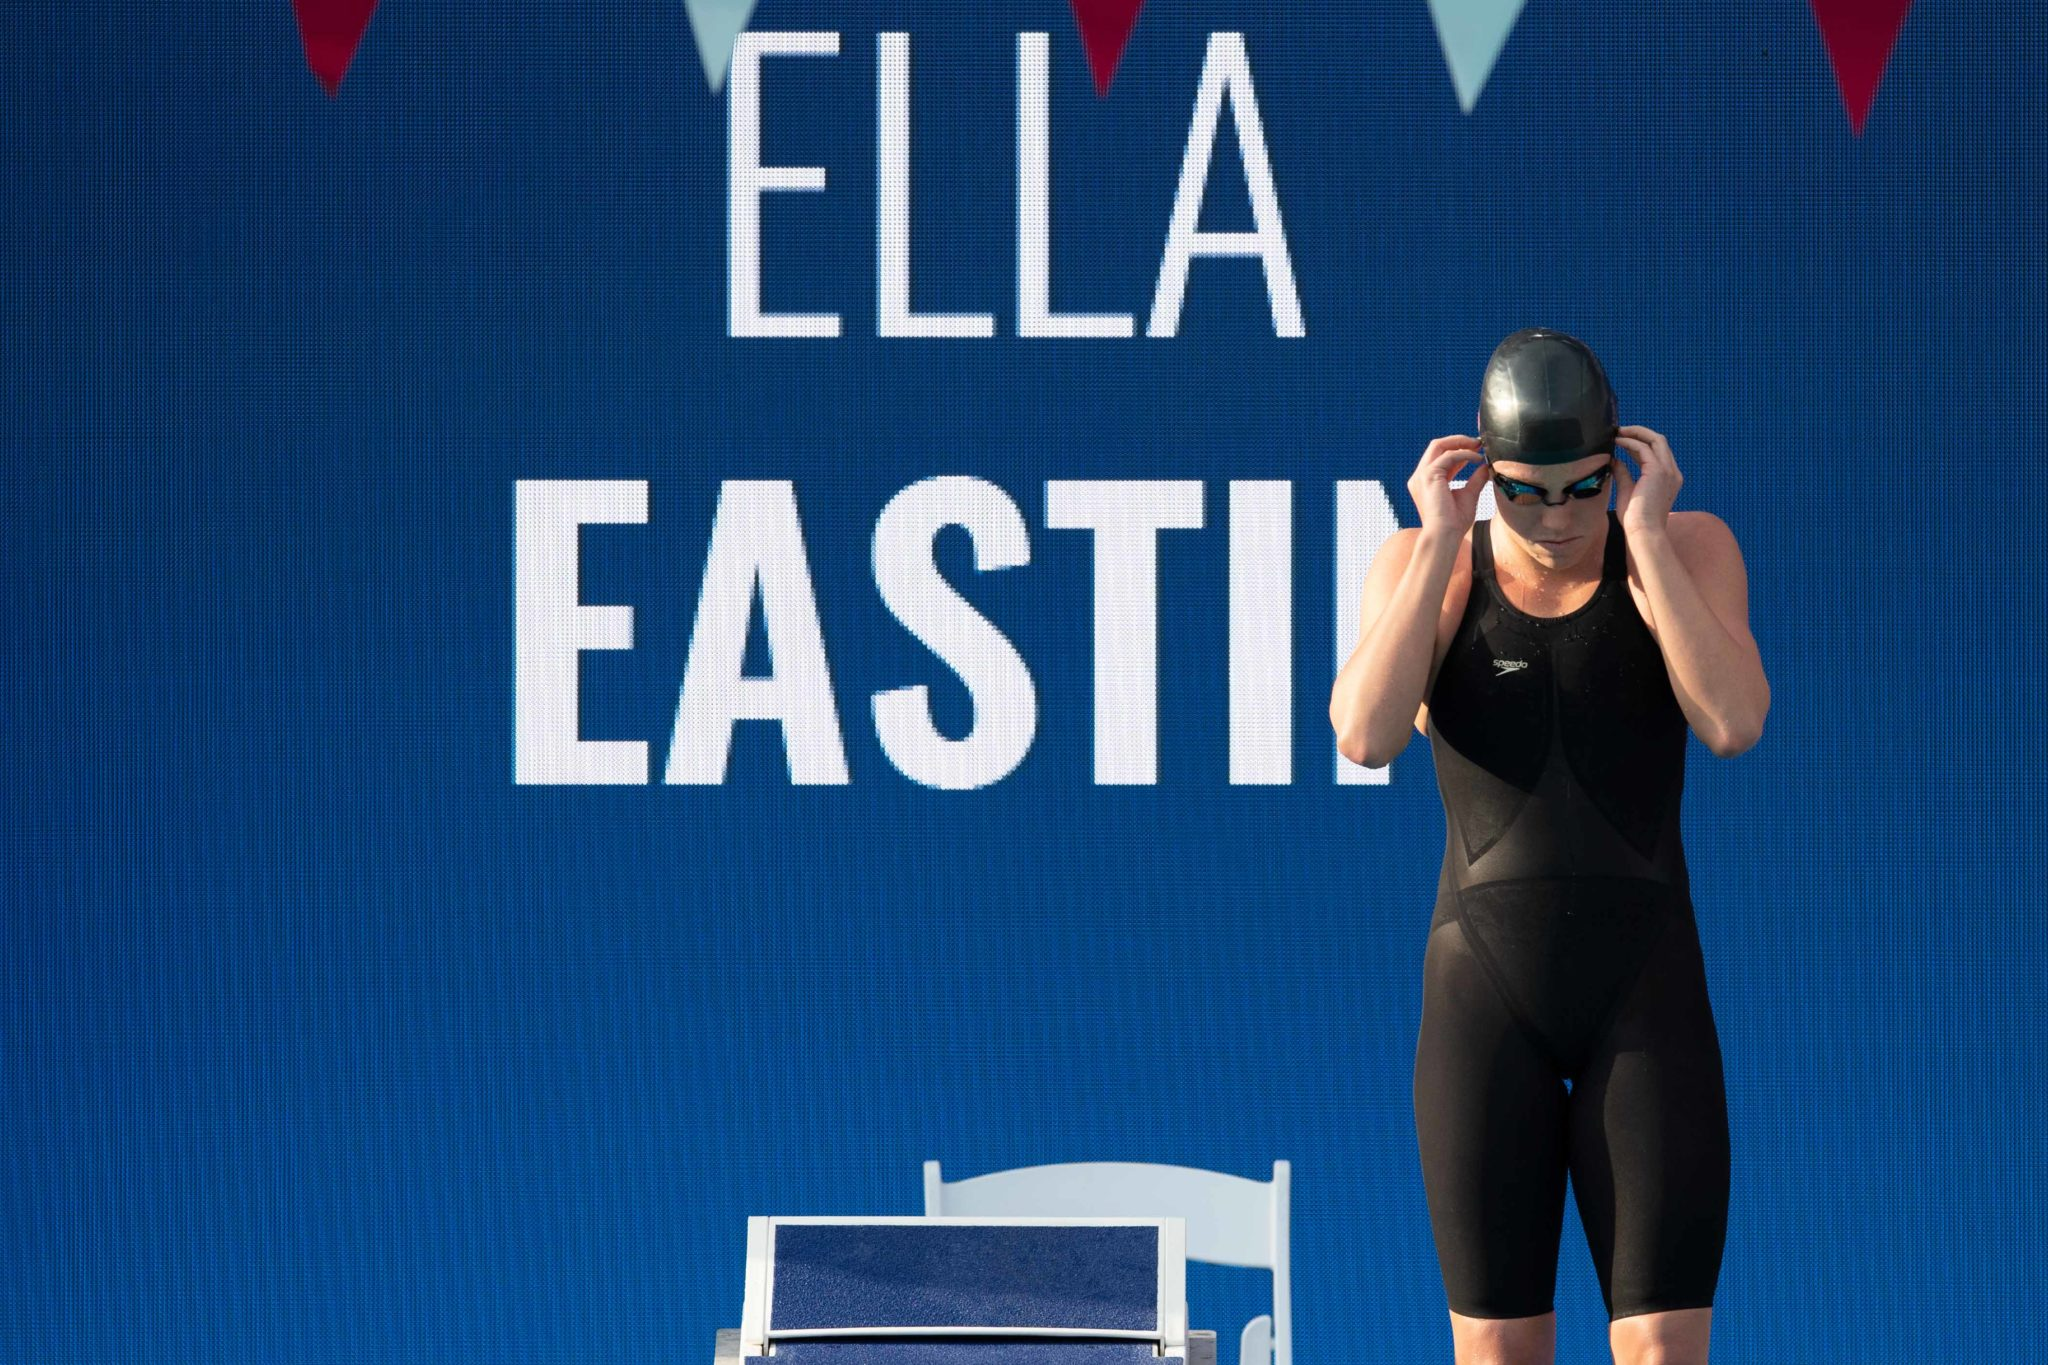 Ella Eastin Swims Pair Of 200 IM Best Times After Bout With Mono